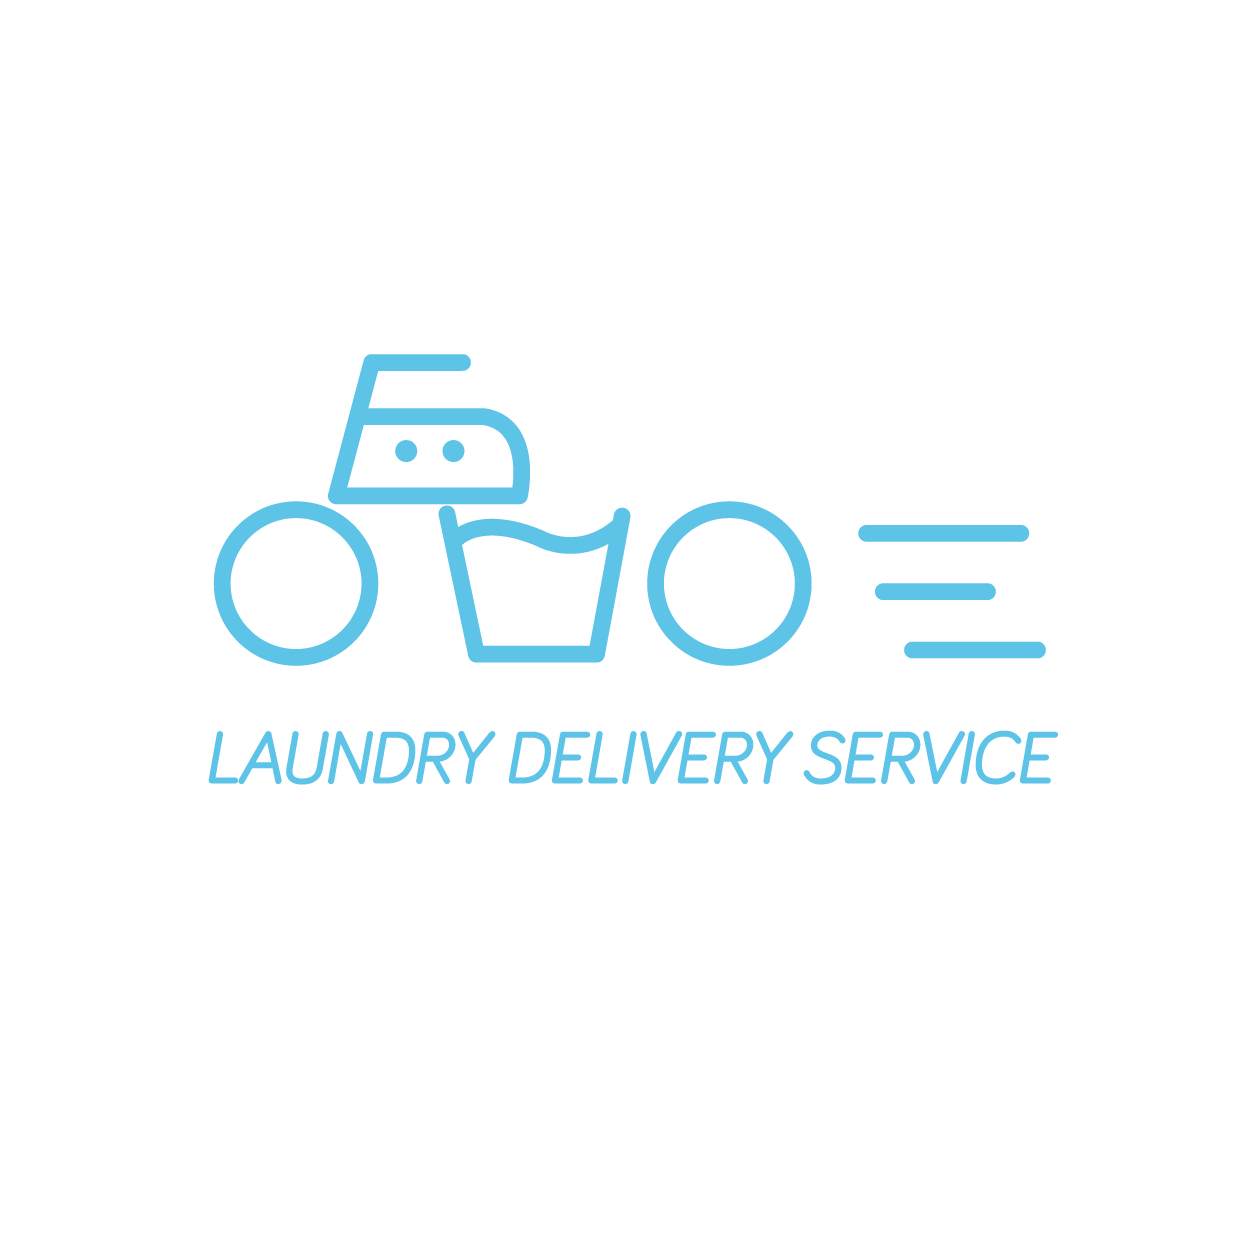 Laundry Delivery Service Designed By Tal Giat Www Talgiat Com